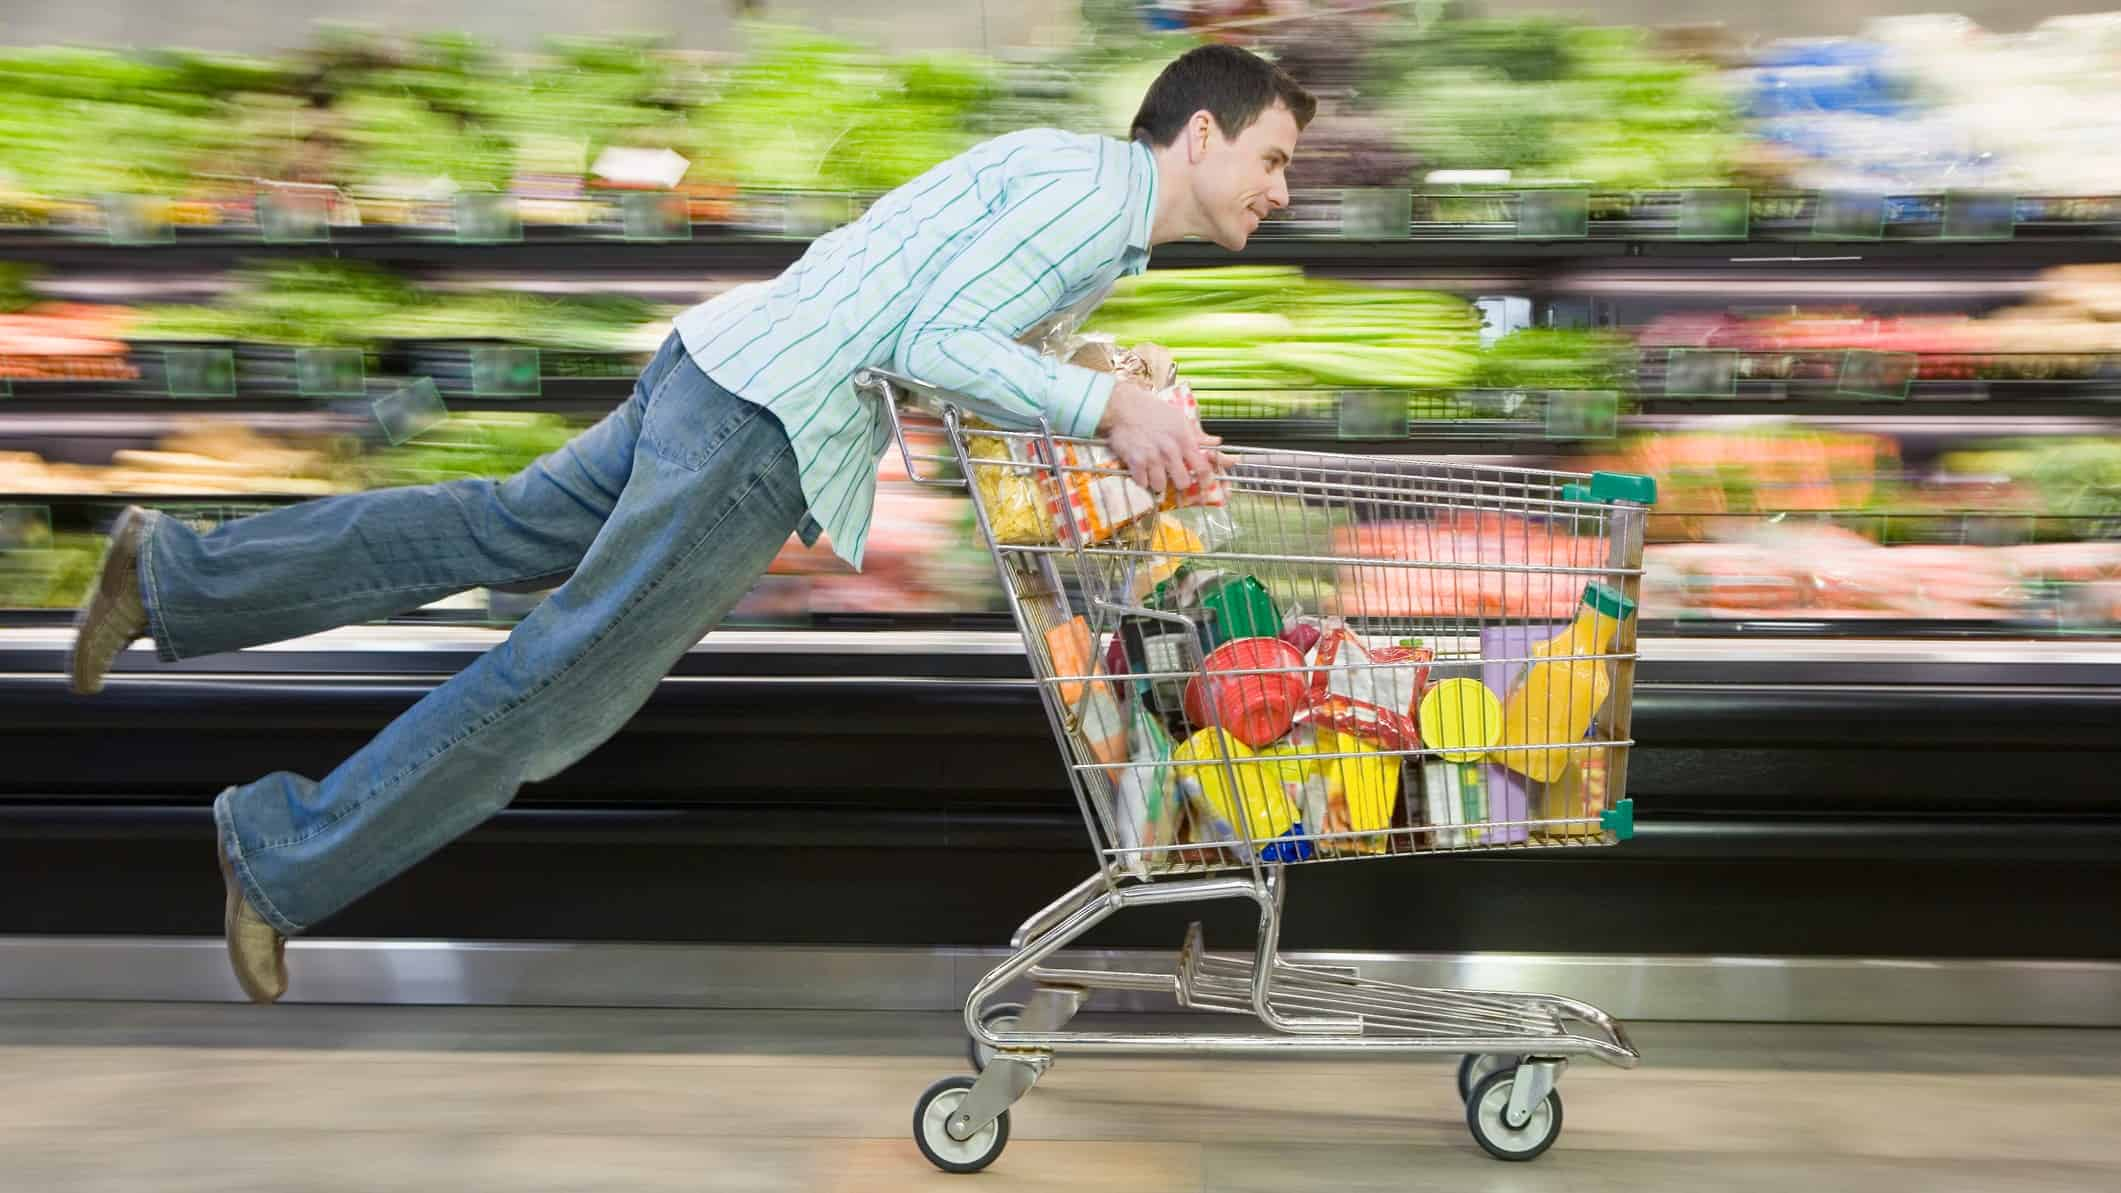 Man racing shopping trolley through supermarket likes coles or woolworths